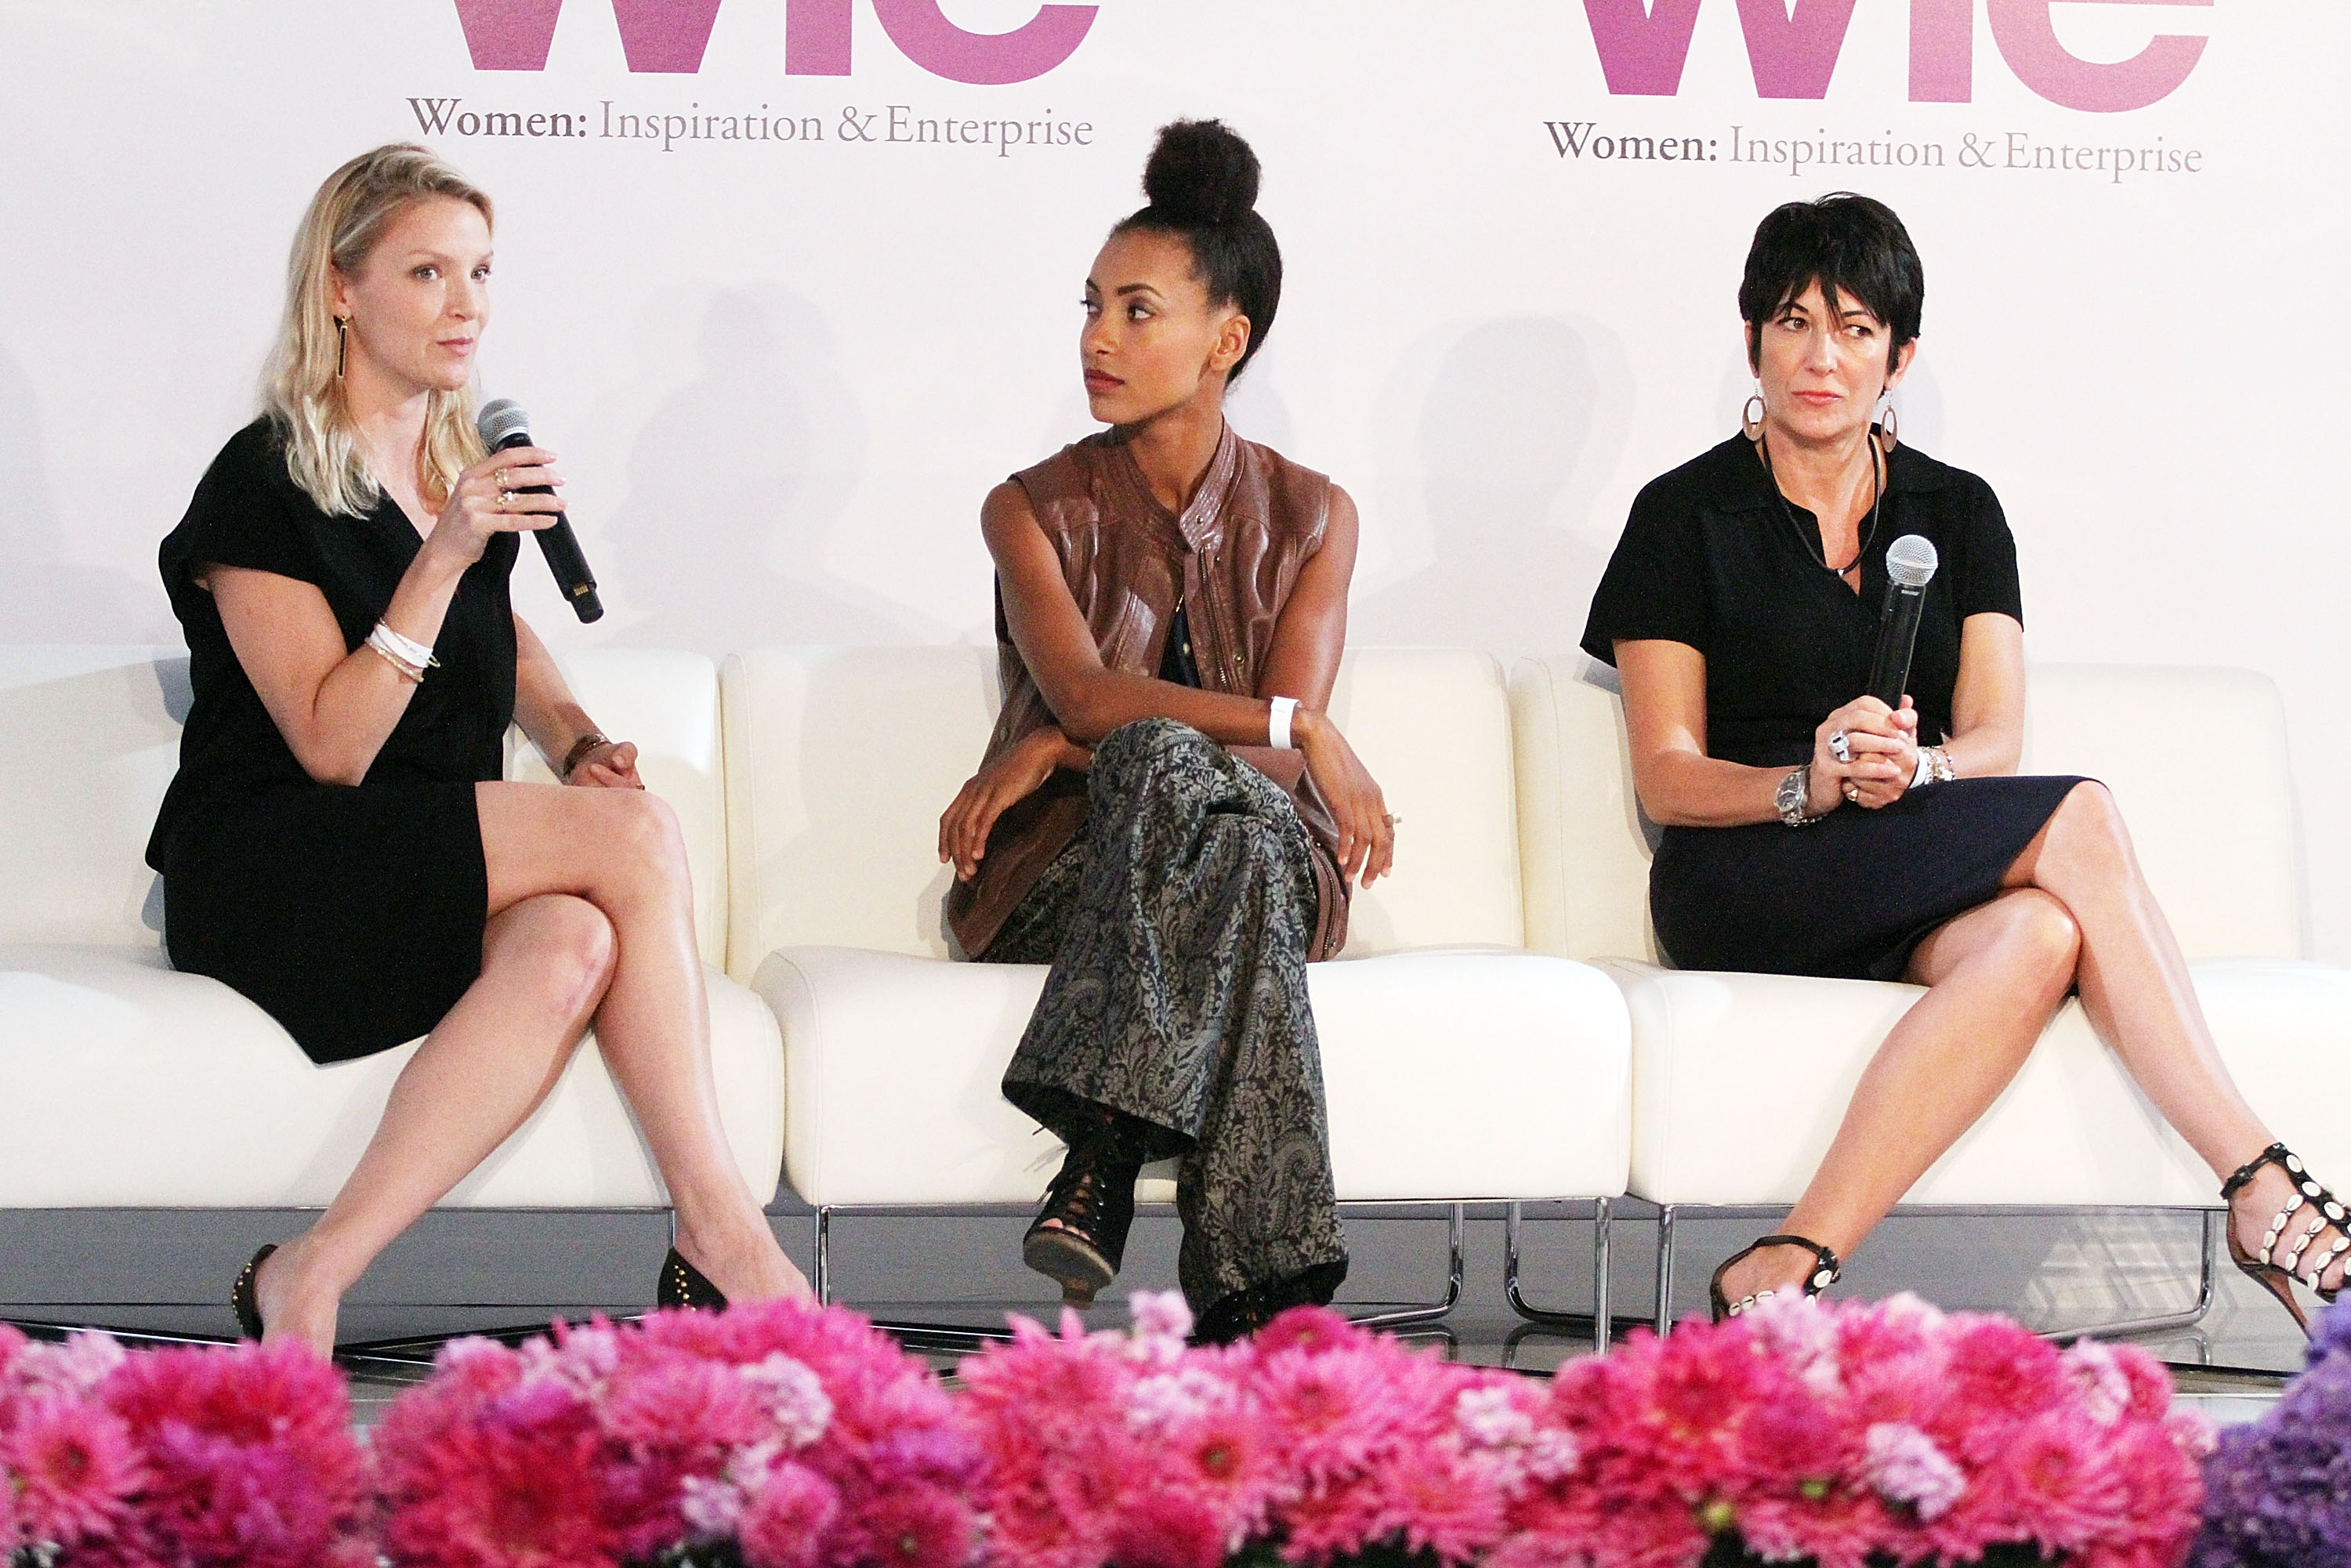 Kristy Caylor, Esperanza Spalding and Ghislaine Maxwell attend day 1 of the 4th Annual WIE Symposium at Center 548 on September 20, 2013 in New York City. (Photo by Laura Cavanaugh/Getty Images)